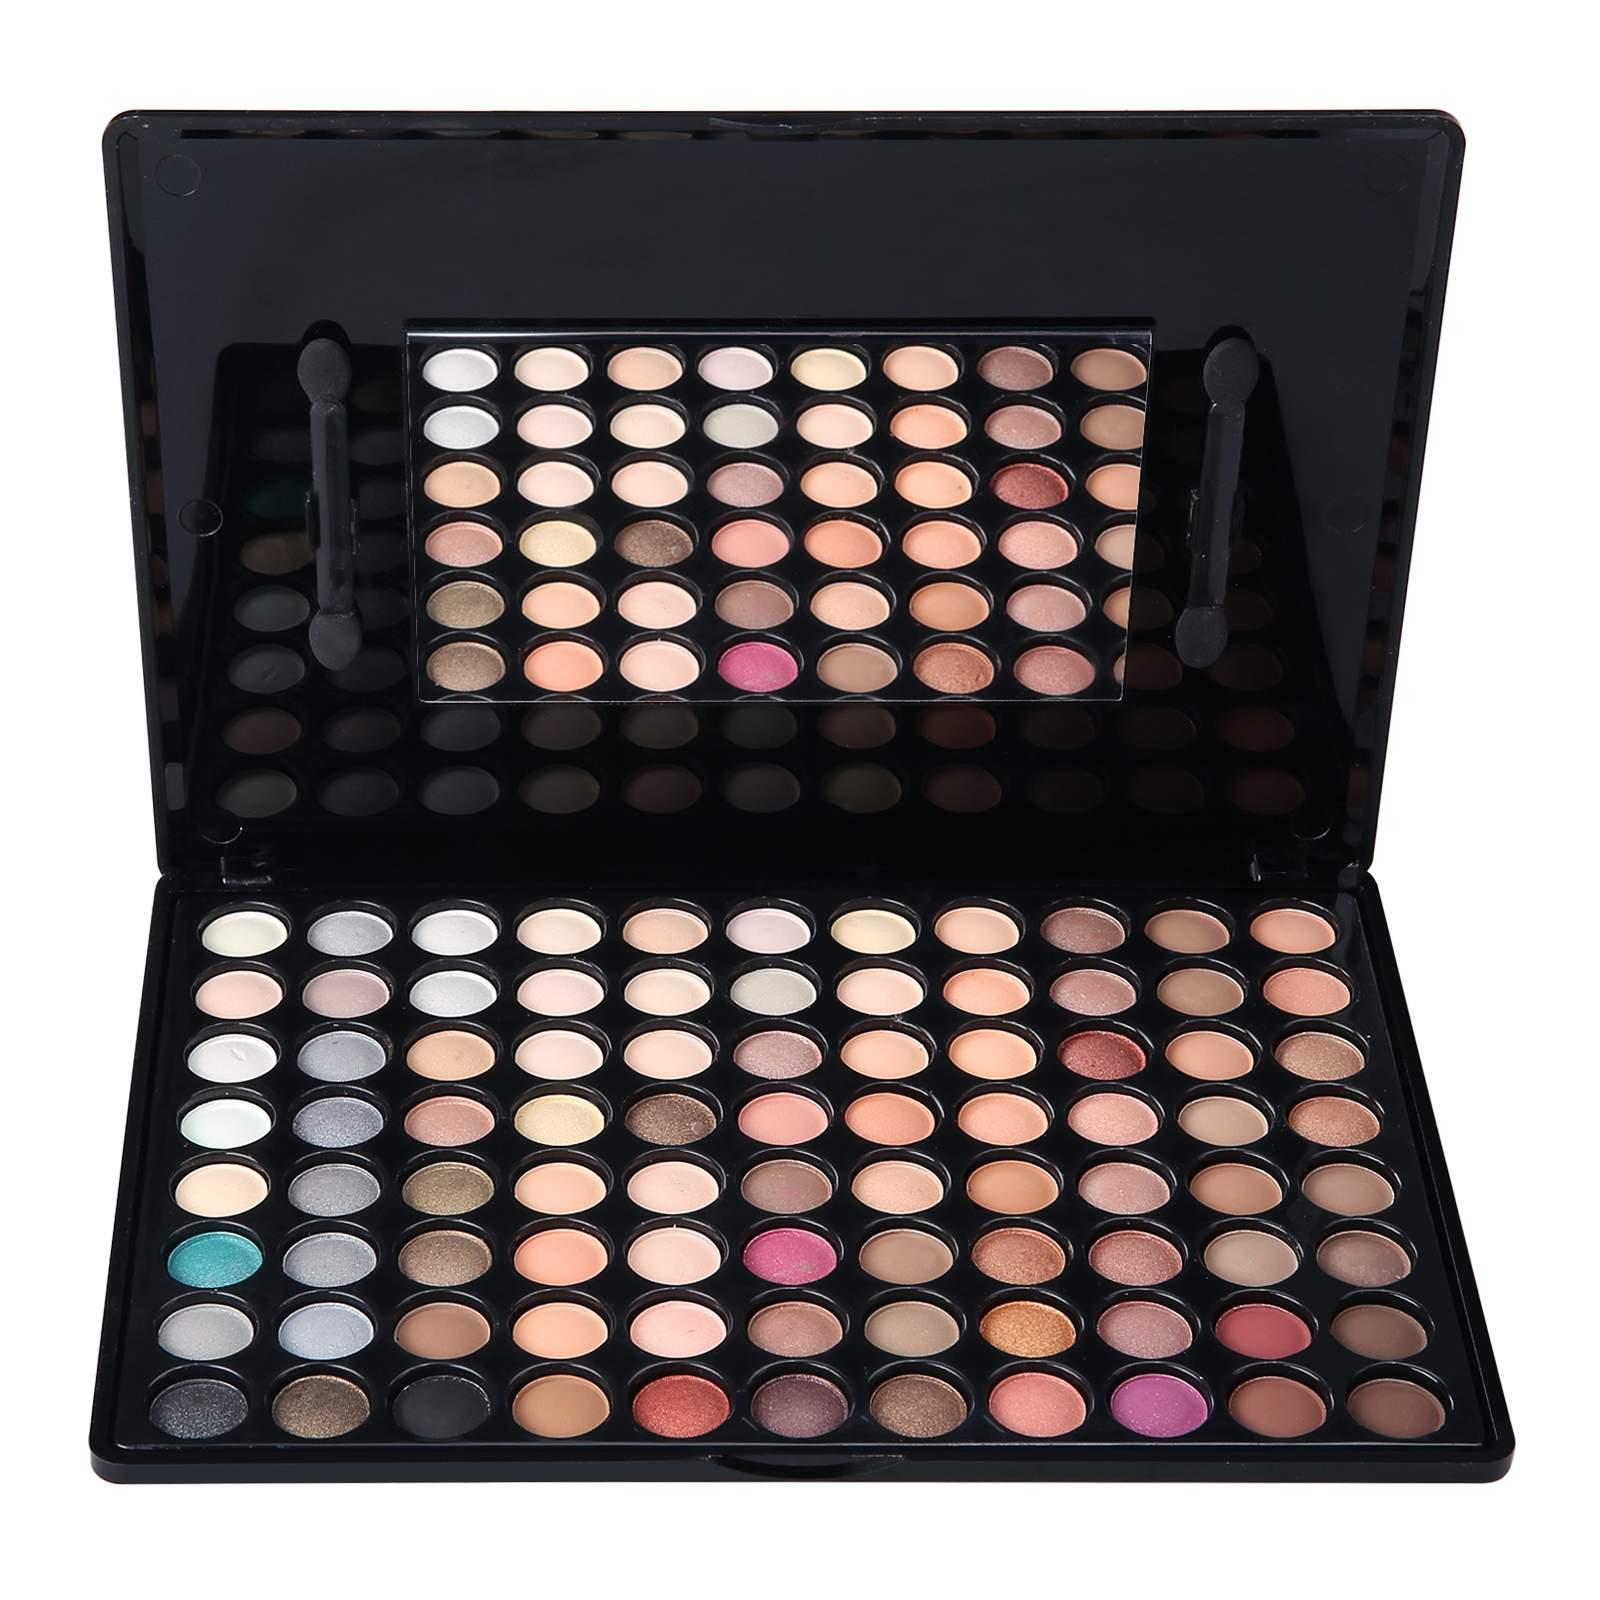 Colore Parete Glitter : Professional eyeshadow matte shimmer glitter palette with